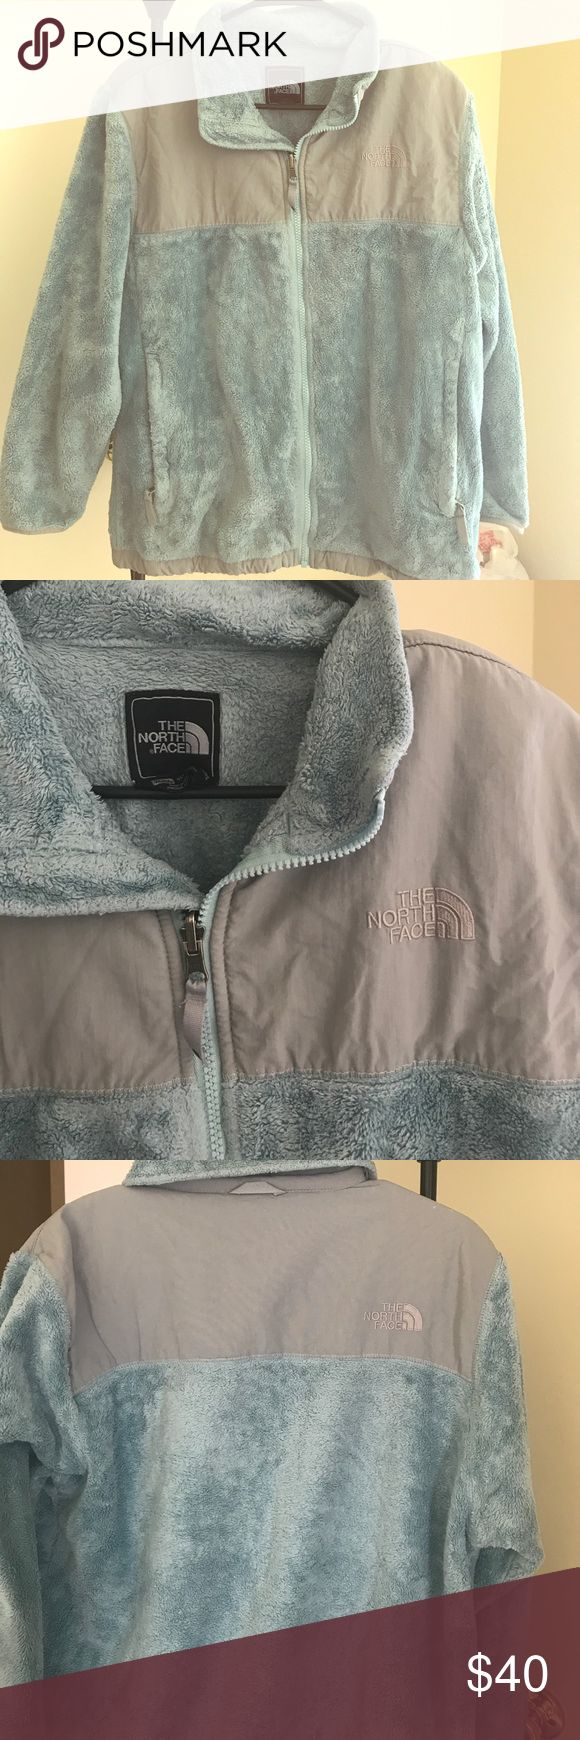 Girls north face jacket! Light blue and gray girls north face jacket. It's fleece and barely been worn! Super warm, soft and comfy! North Face Jackets & Coats